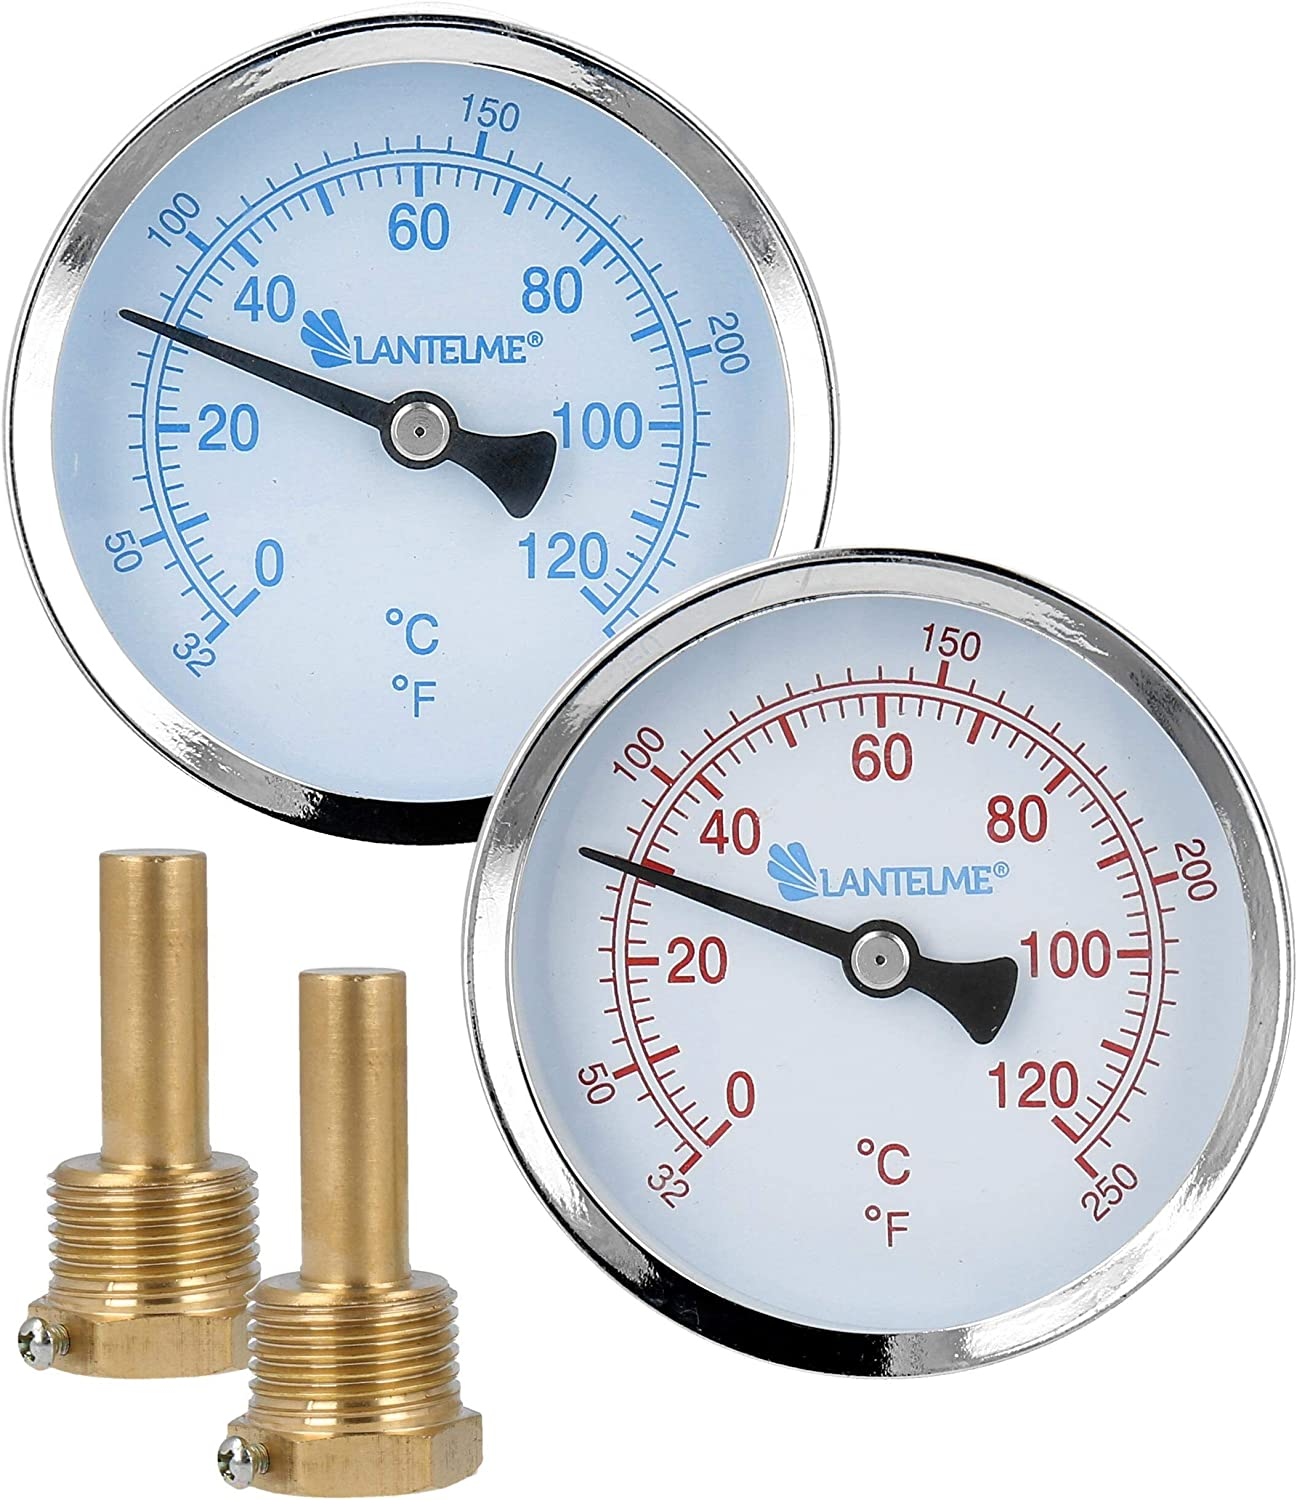 Lantelme 2 St/ück Thermometer Heizung Set 120 /°C Tauchh/ülse Zeigerthermometer blau rot analog Heizungsthermometer 7823